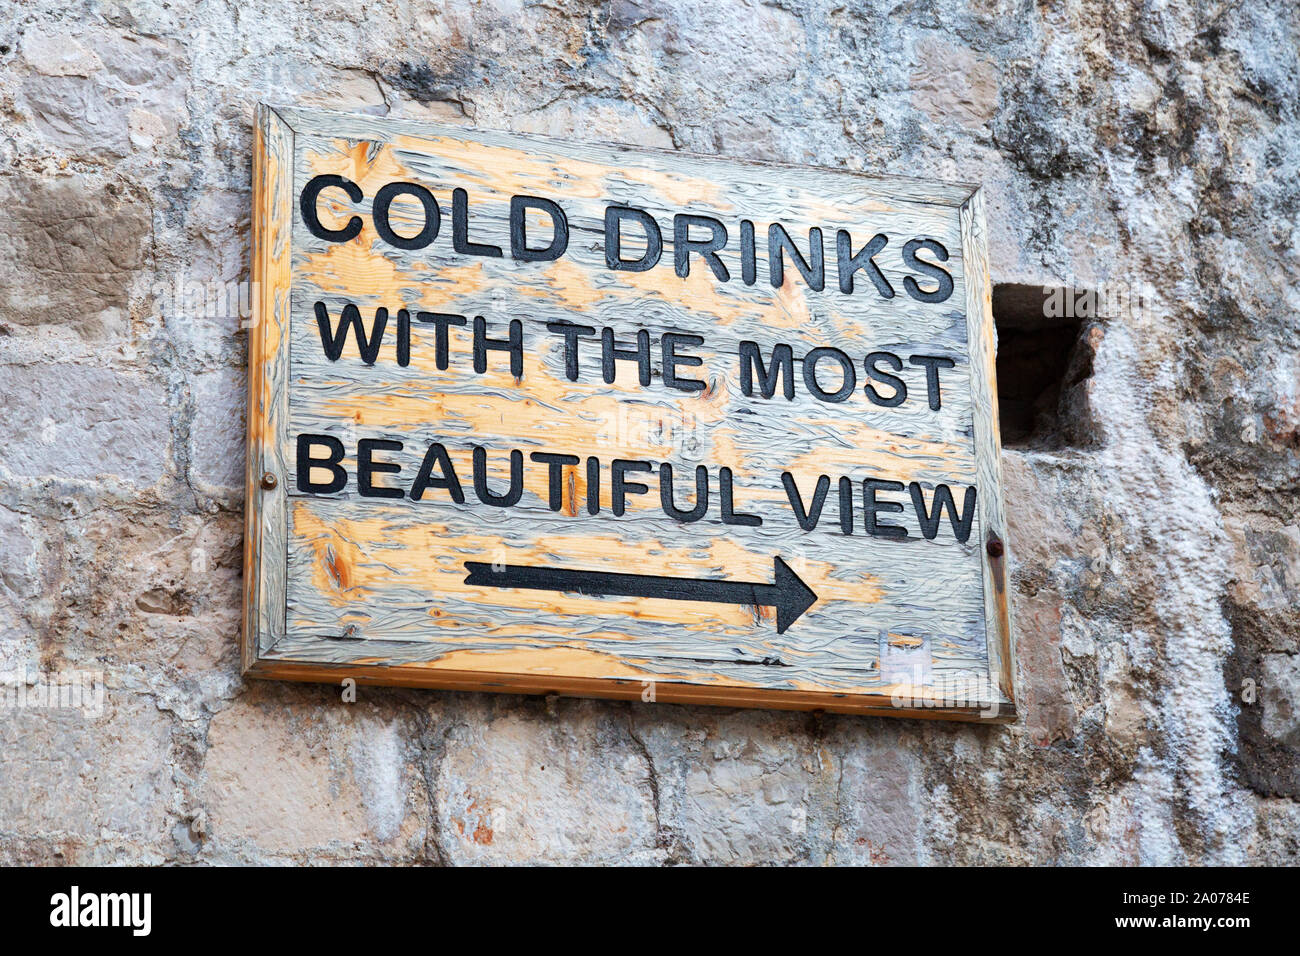 """Well known sign """"Cold drinks with the most beautiful view"""" giving directions to the Buza bar for sunset drinks; Dubrovnik old town, Croatia Europe Stock Photo"""